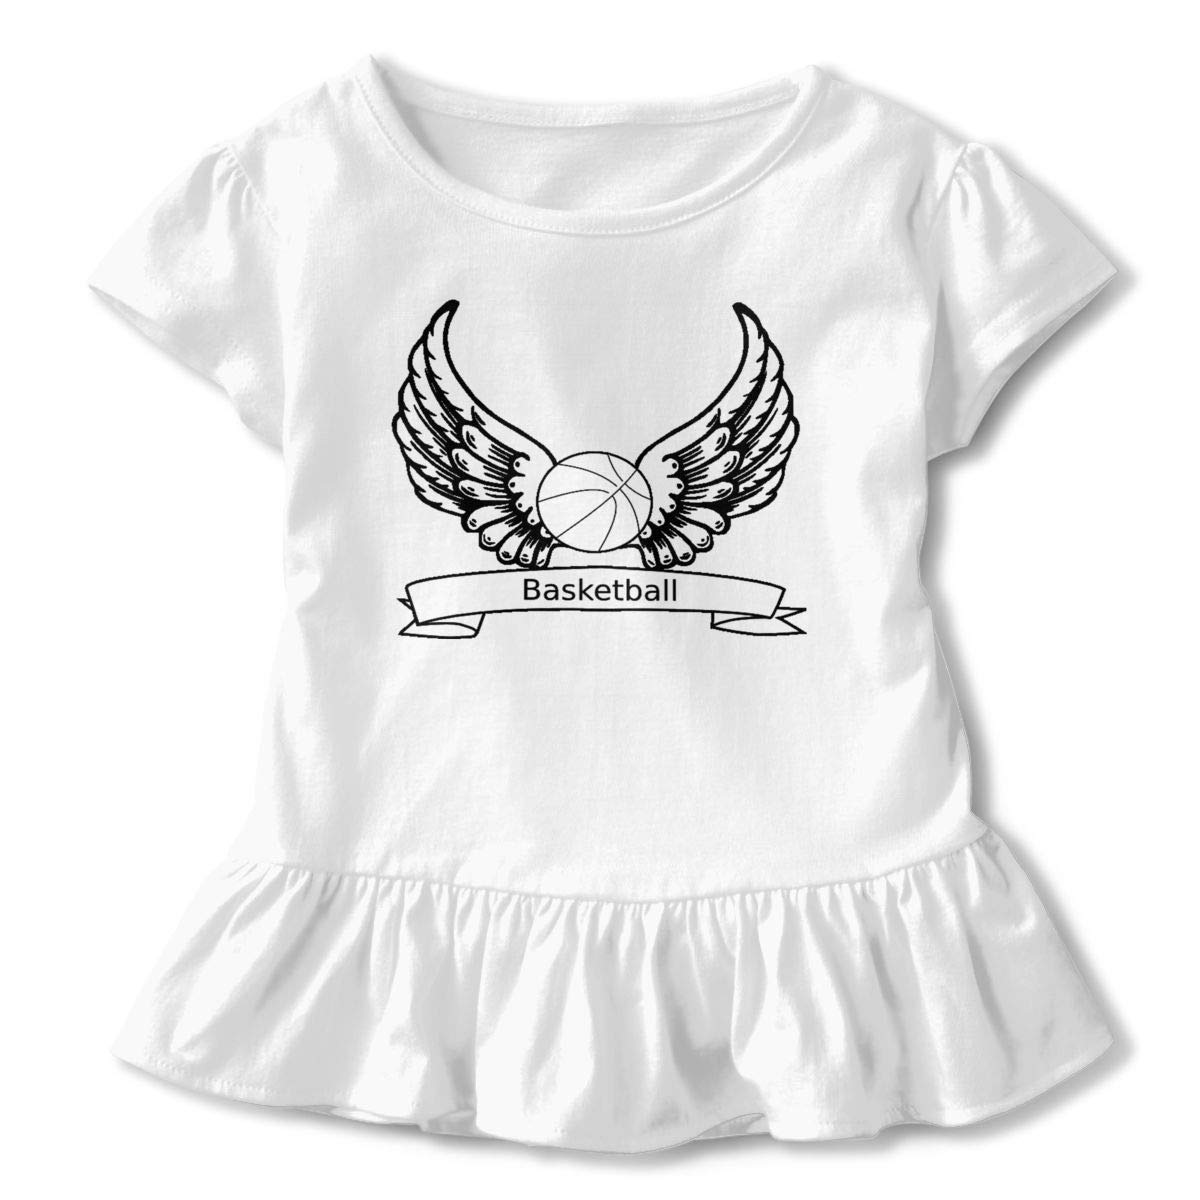 JVNSS Interesting Rowing Infant Baby Jumpsuit Short Sleeve Onesies Cute T Shirt for 0-24 Months Baby